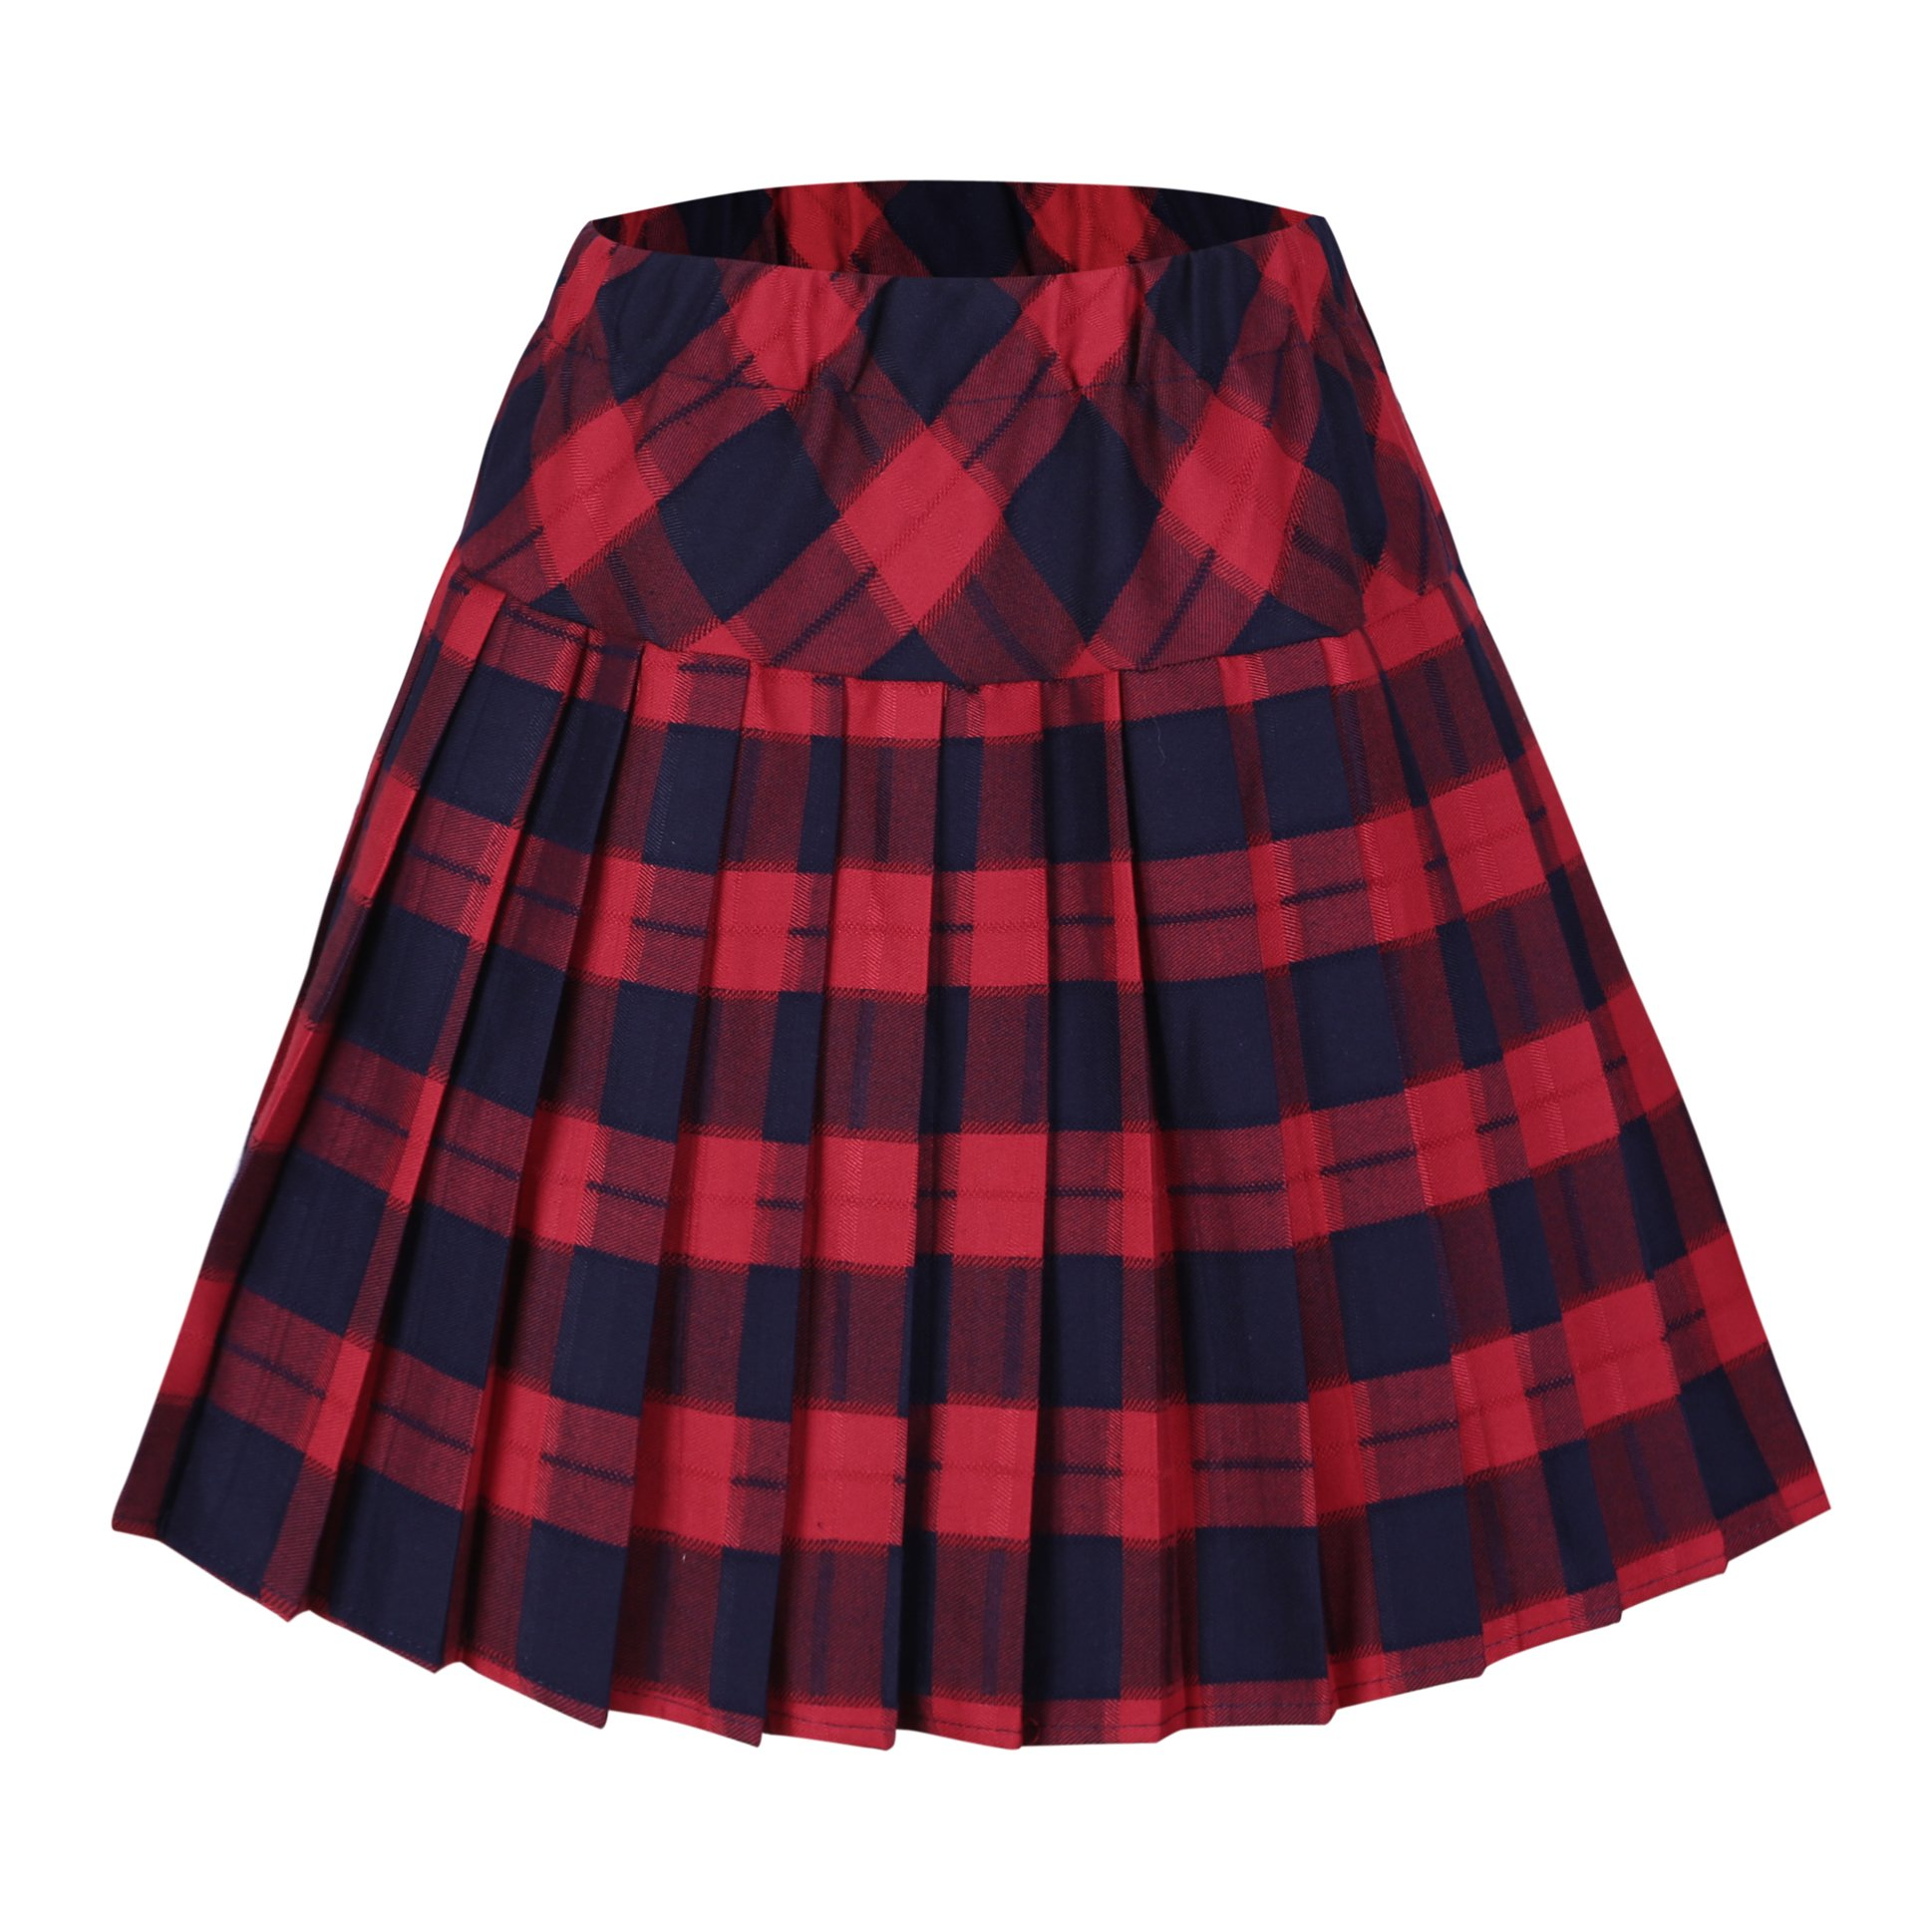 Urban CoCo Women's Elastic Waist Tartan Pleated School Skirt (XX-Large, Series 5 red)